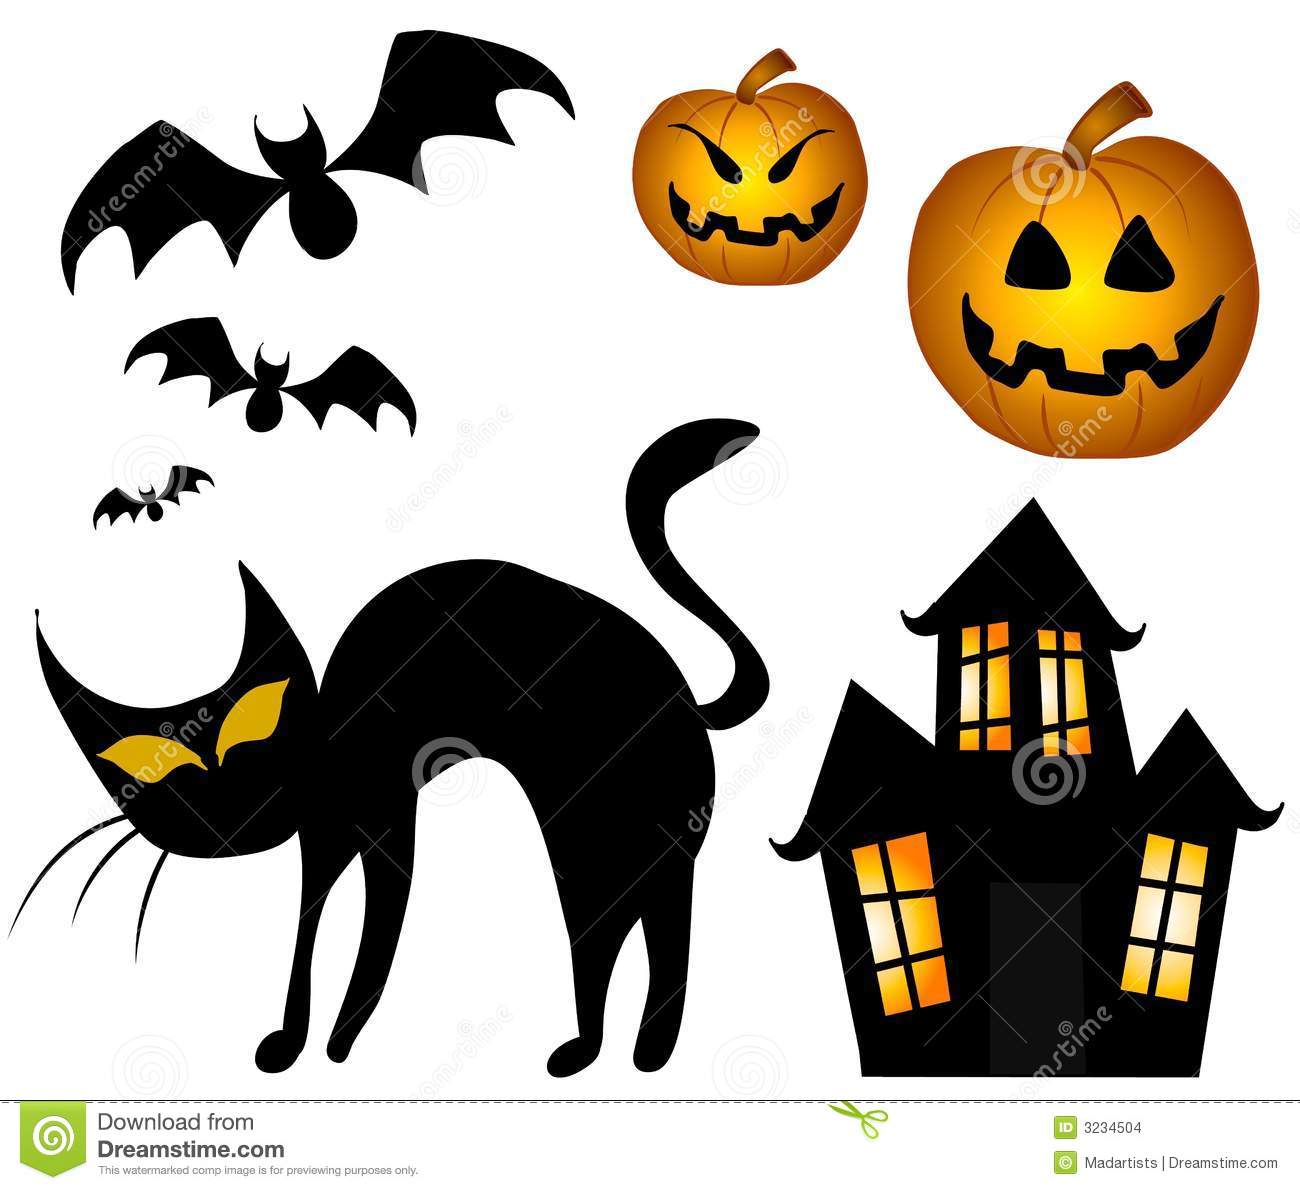 halloween image clipart - photo #21